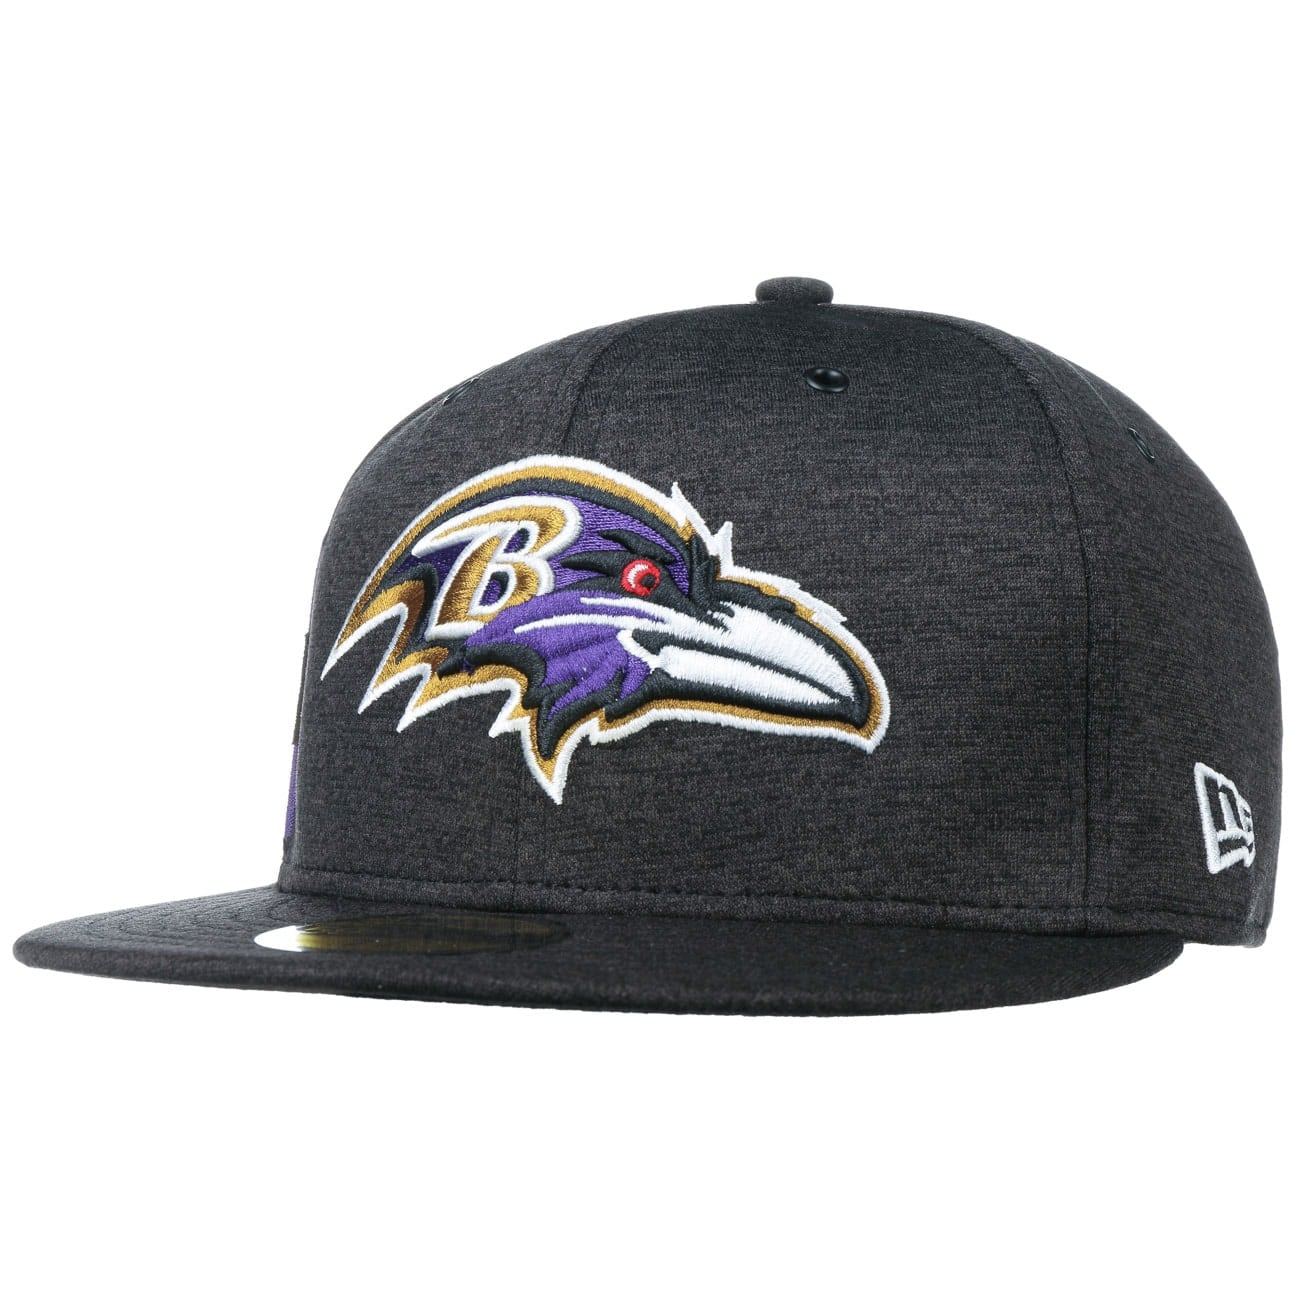 59fifty-on-field-18-ravens-cap-by-new-era-baseballcap